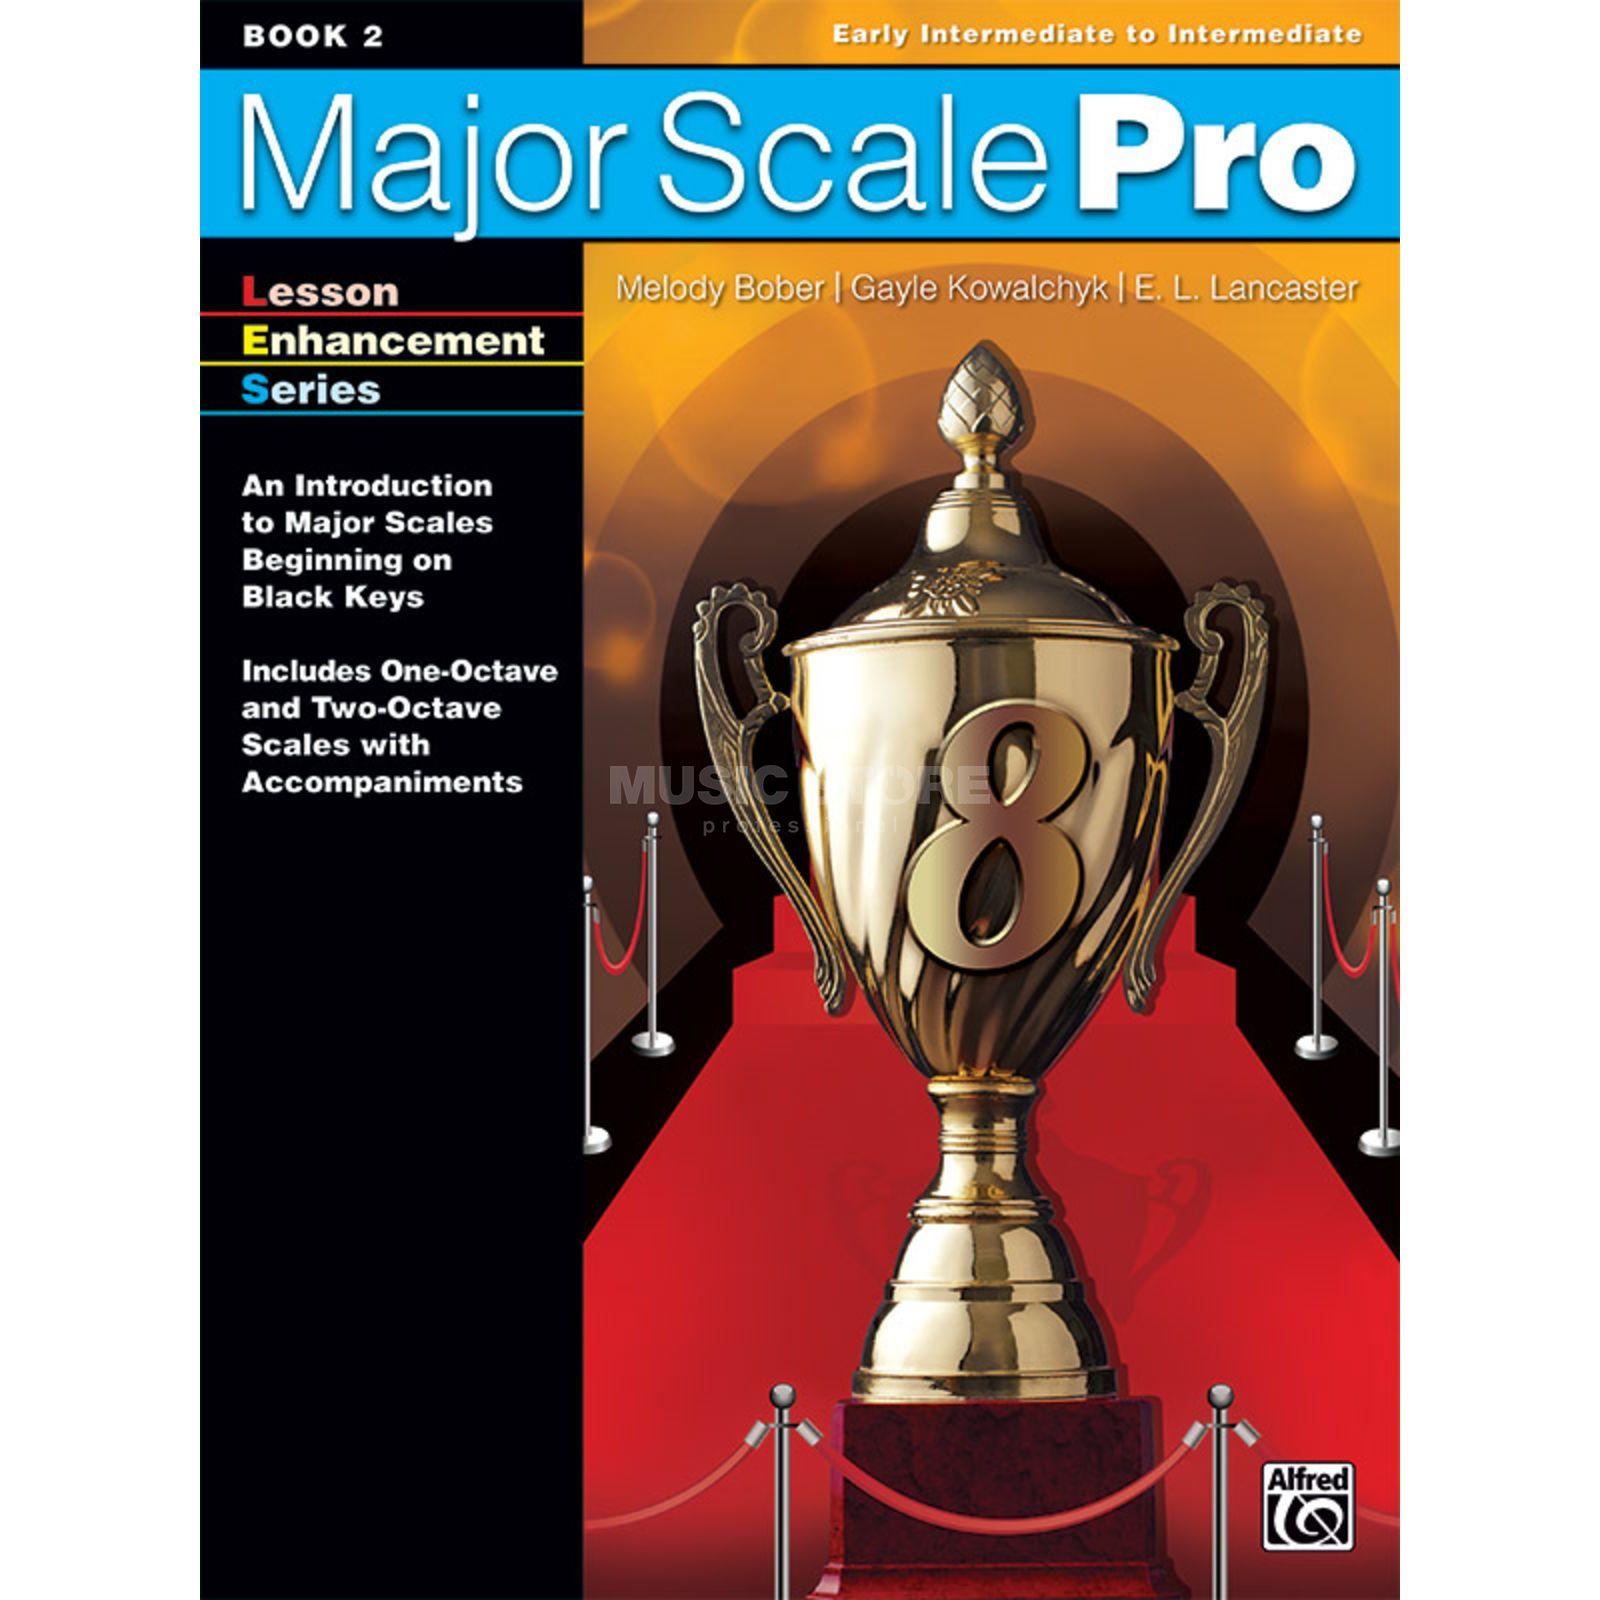 Alfred Music Major Scale Pro, Book 2 Produktbillede